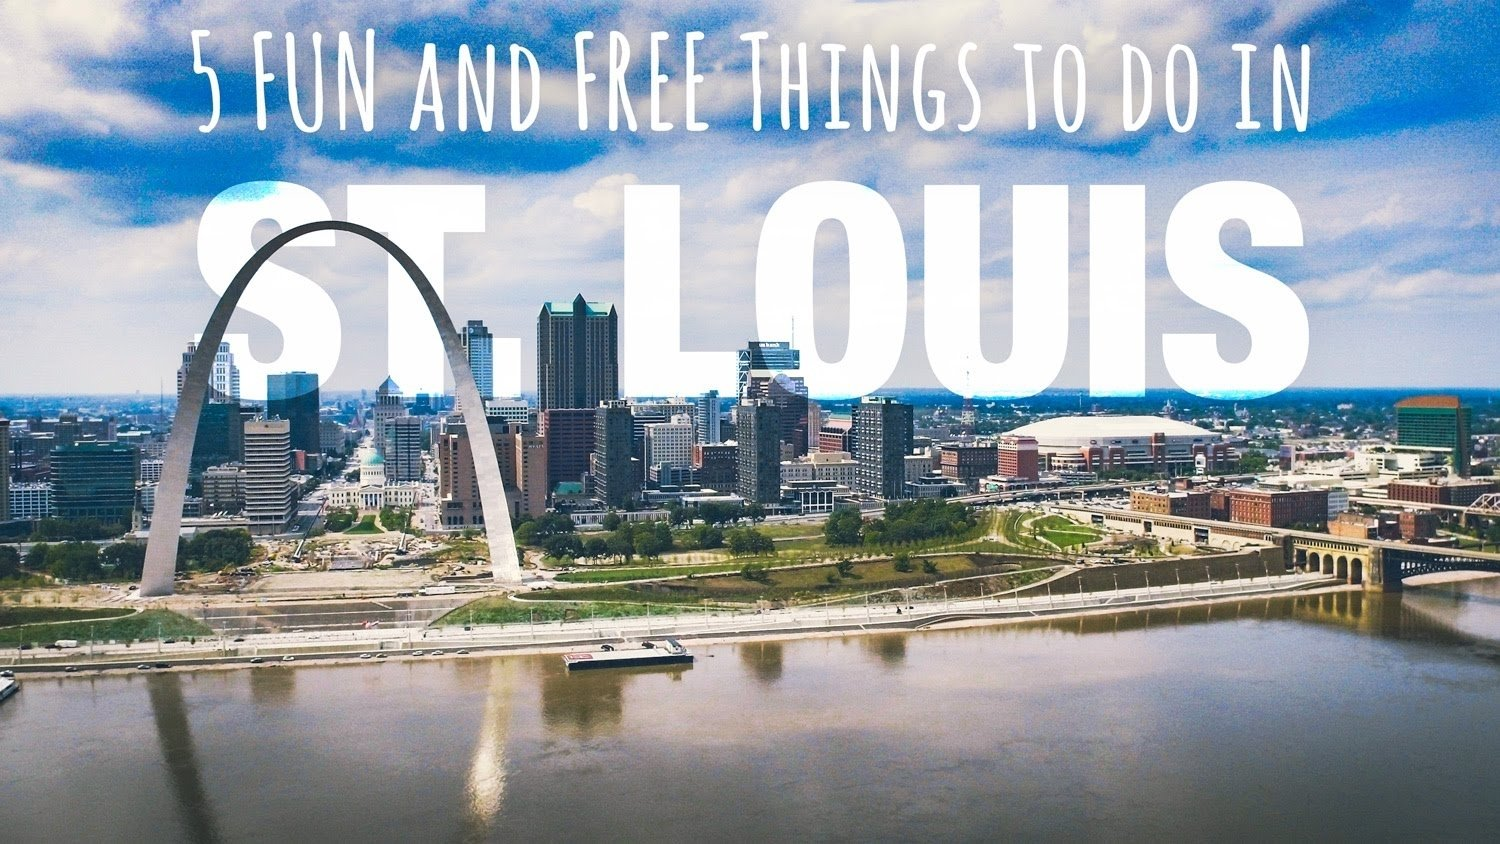 10 Spectacular Fun Date Ideas In St. Louis top 5 fun and free things to do in st louis missouri youtube 2020